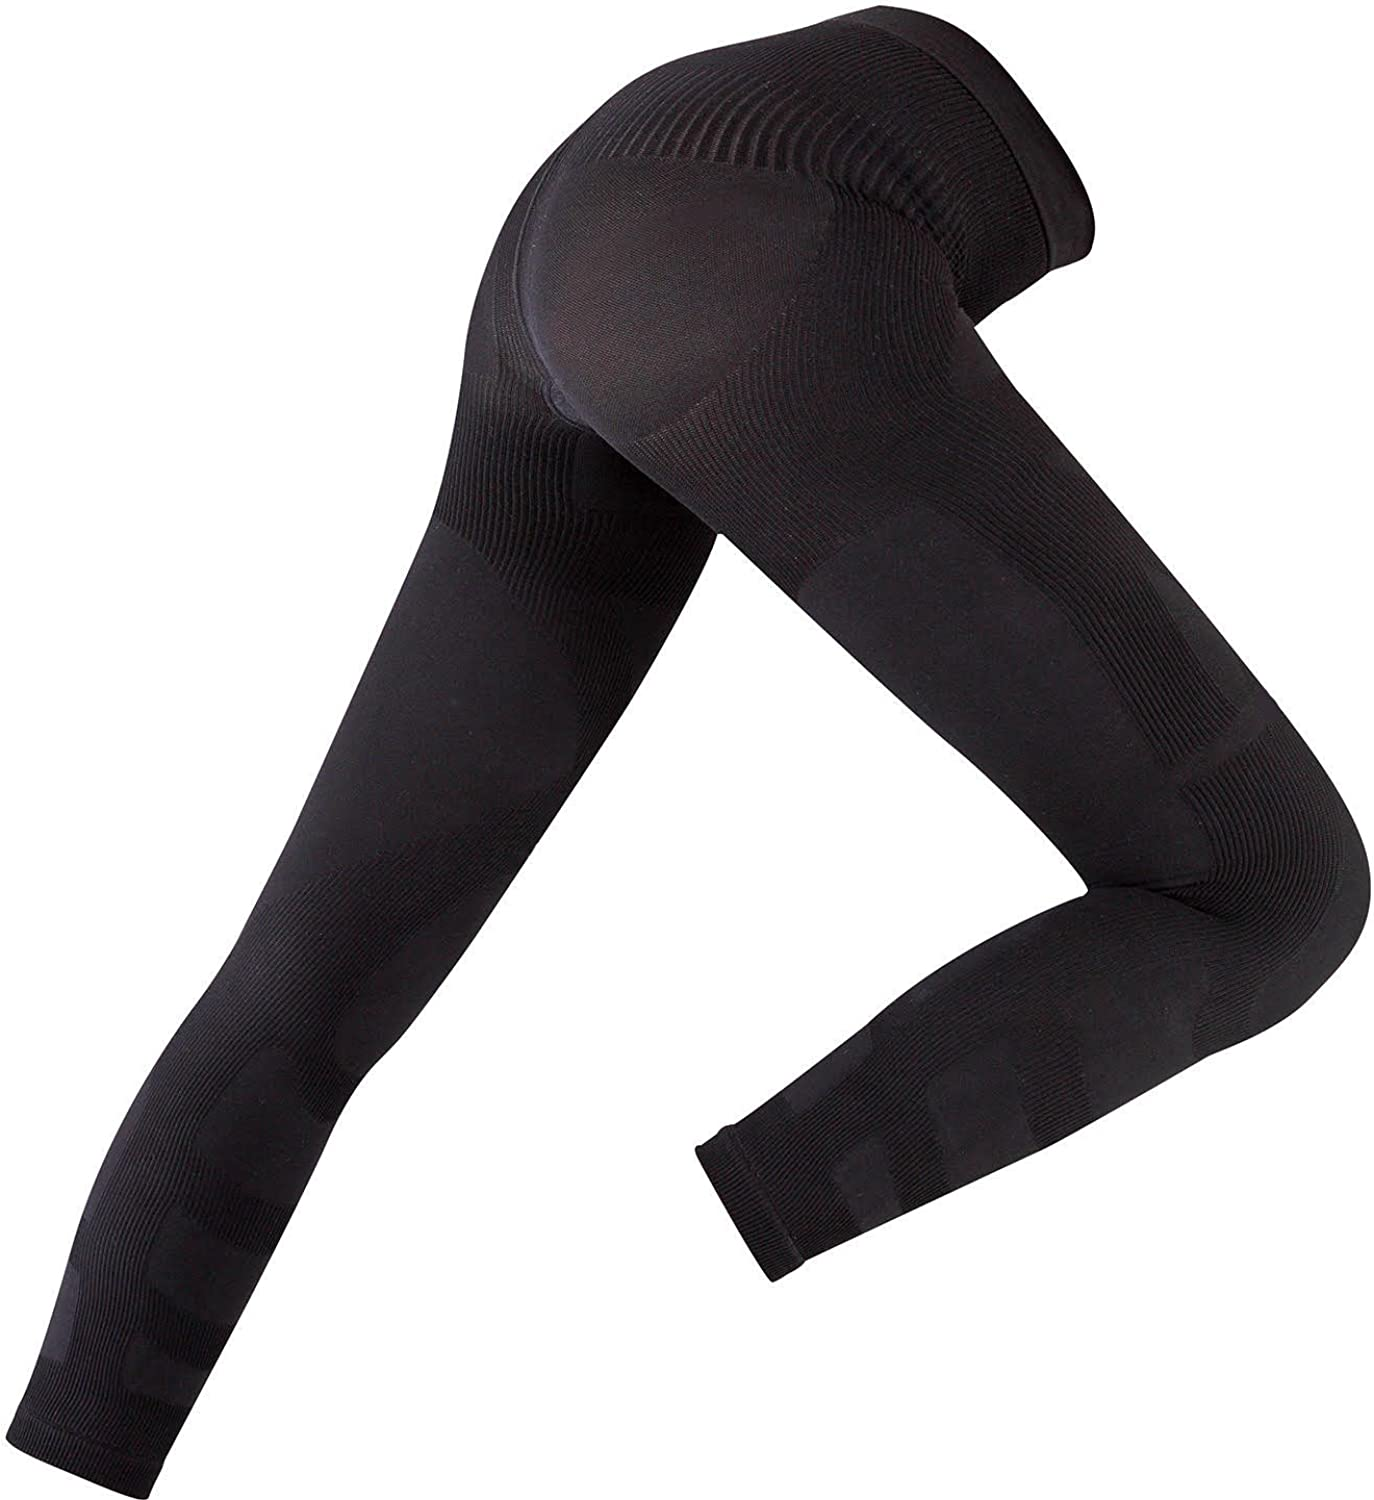 HOYISOX Wicking Compression Recovery Tights 2030 mmHg,Compression Socks for Women